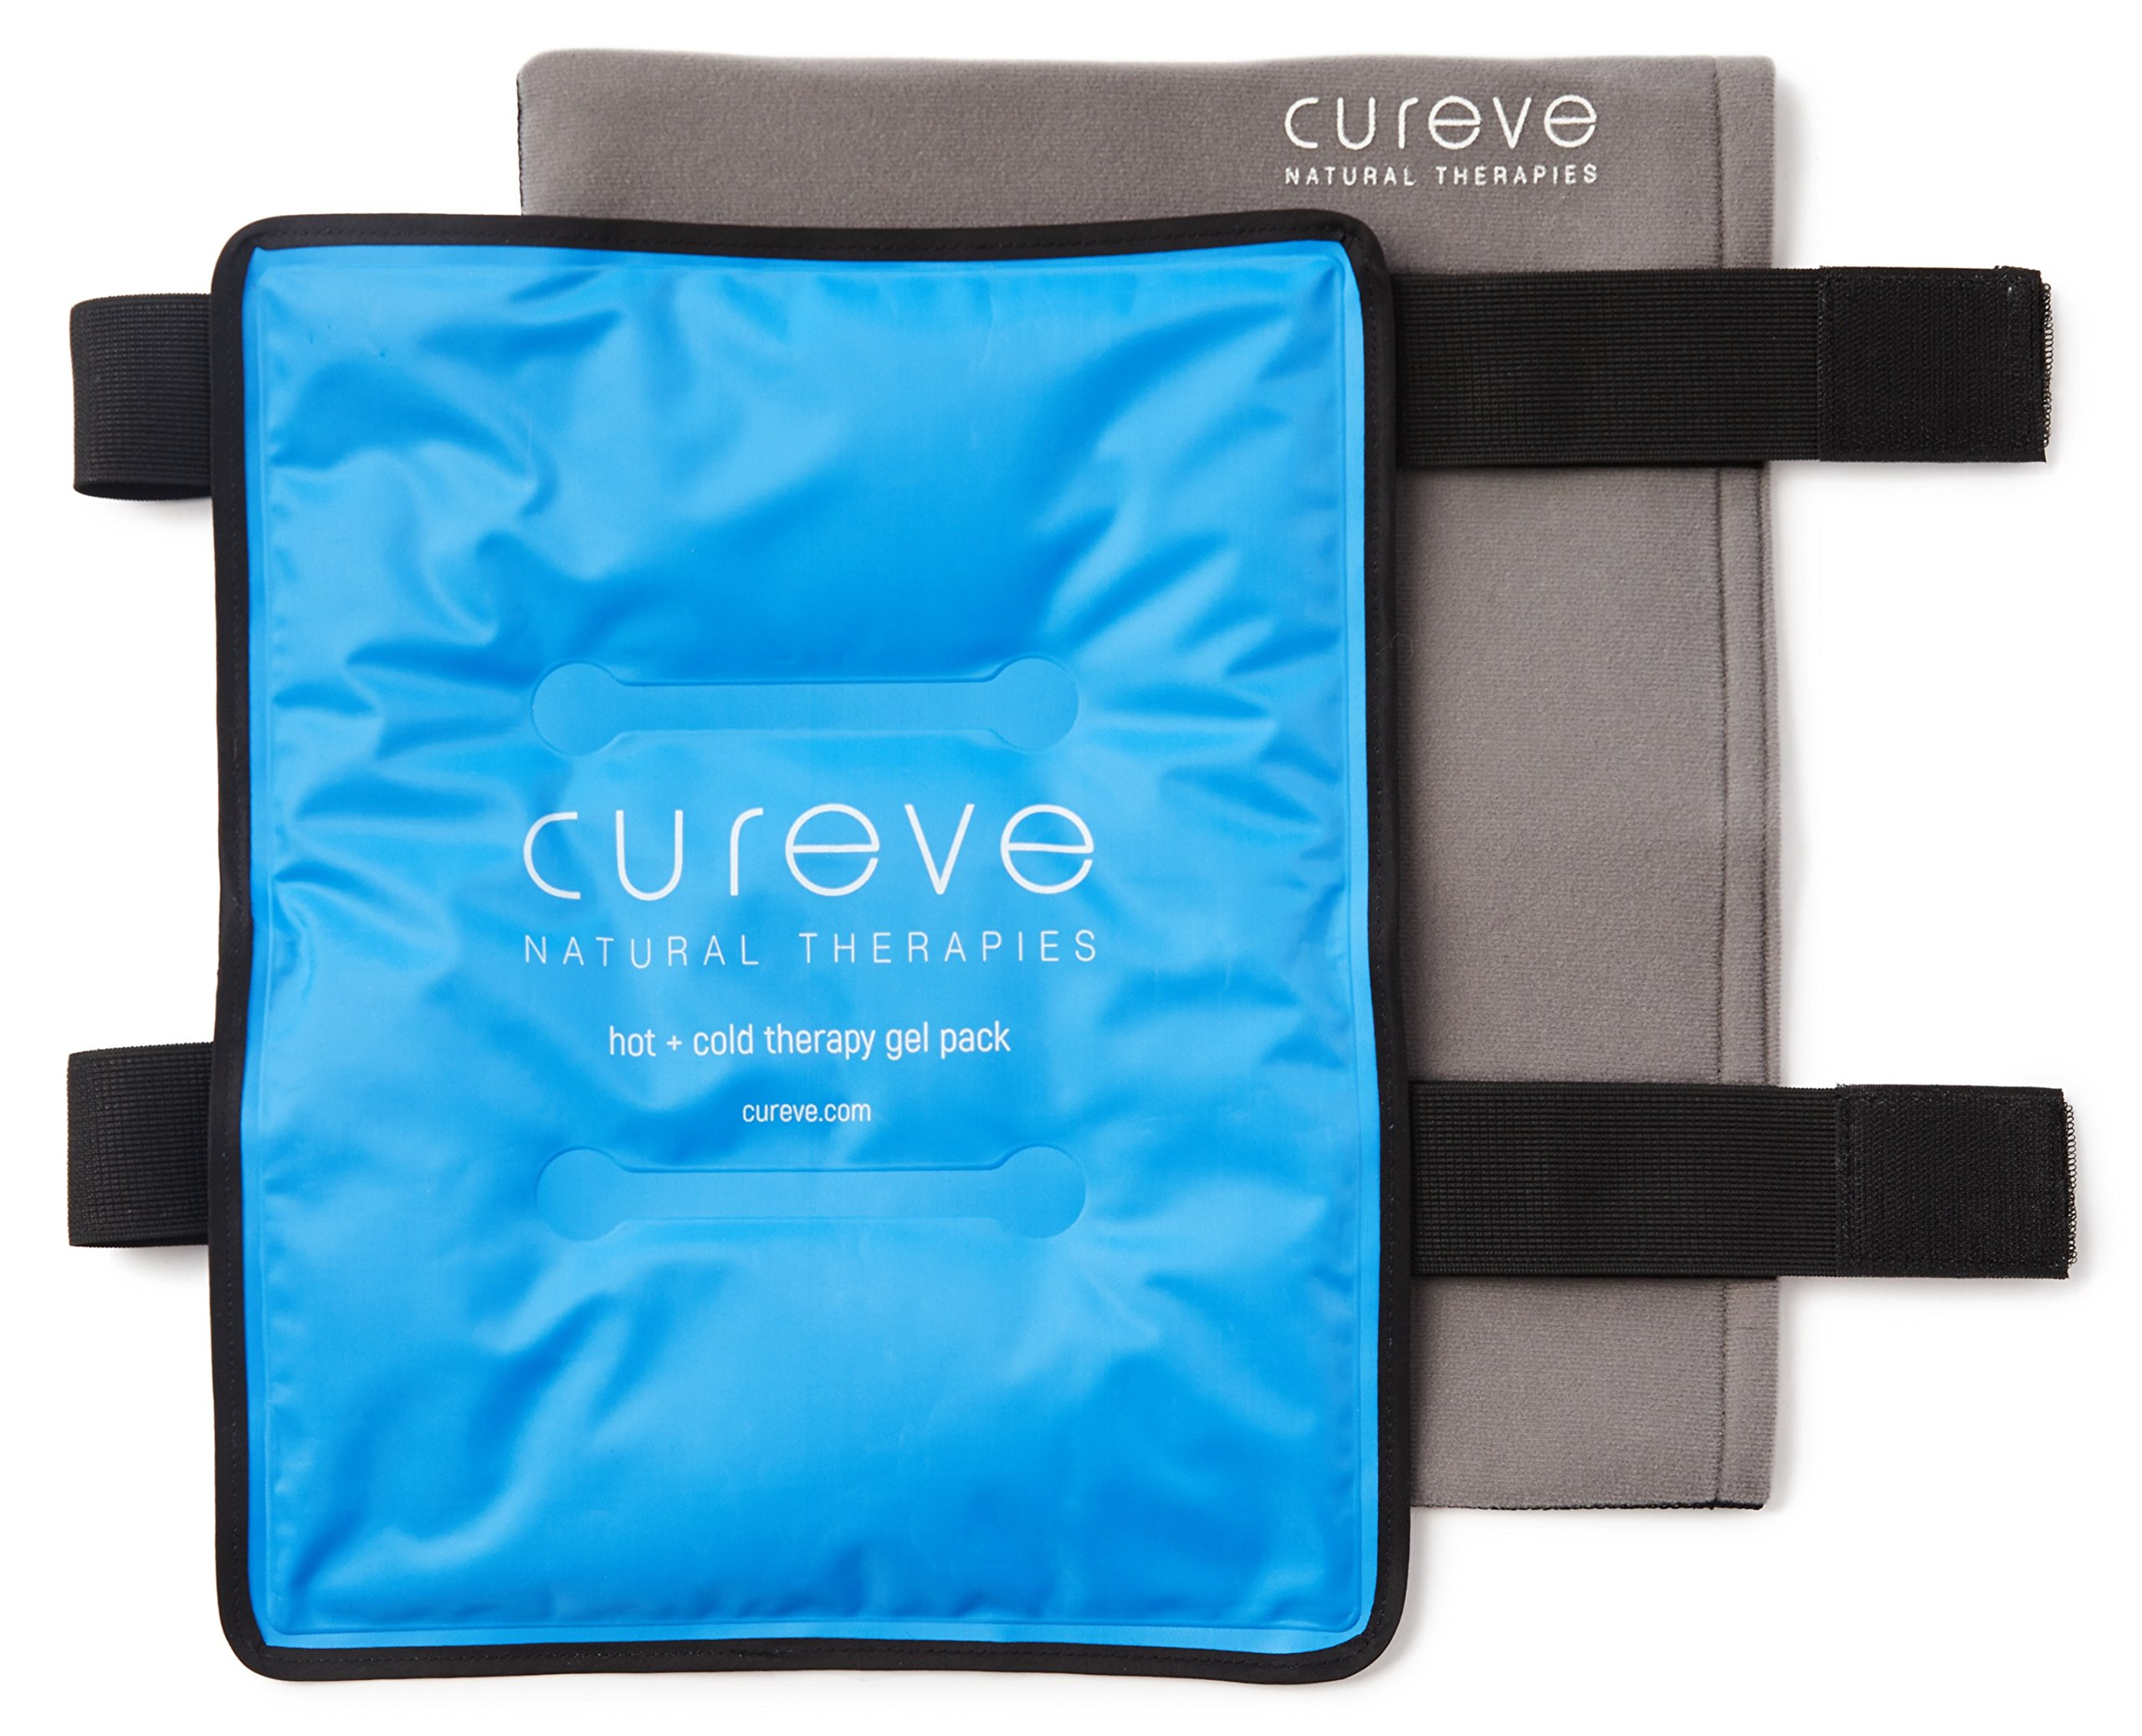 Large Hot and Cold Therapy Gel Pack with Wrap by Cureve (12'' x 15'') - Reusable Ice Pack with Wrap to Treat Injuries, Aches and Pains on Hip, Knee, Side, Back and Shoulder